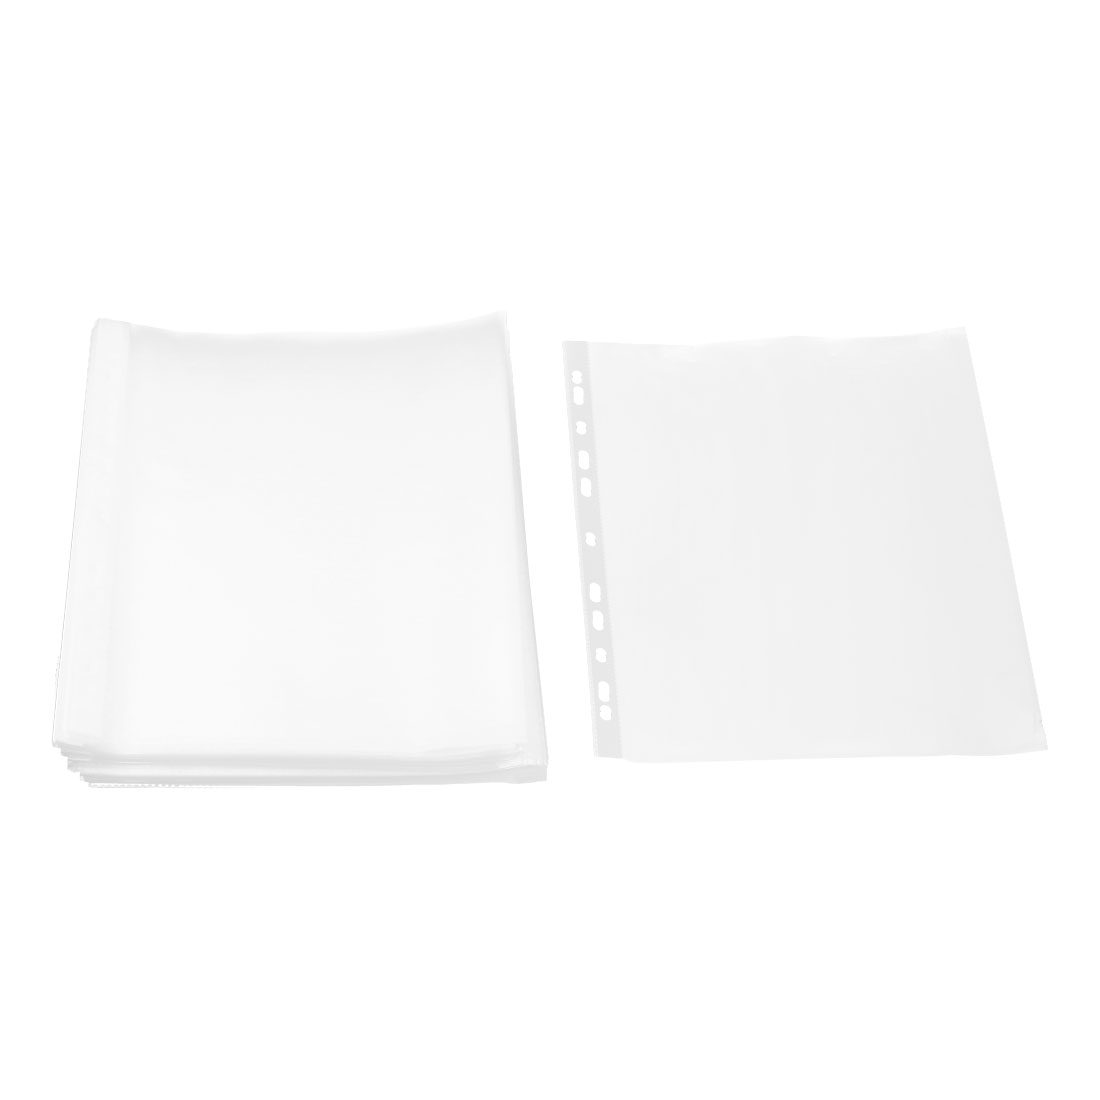 School Plastic Square Shaped File A4 Paper Storage Sheet Protector Clear 0.05cm Thickness 100pcs